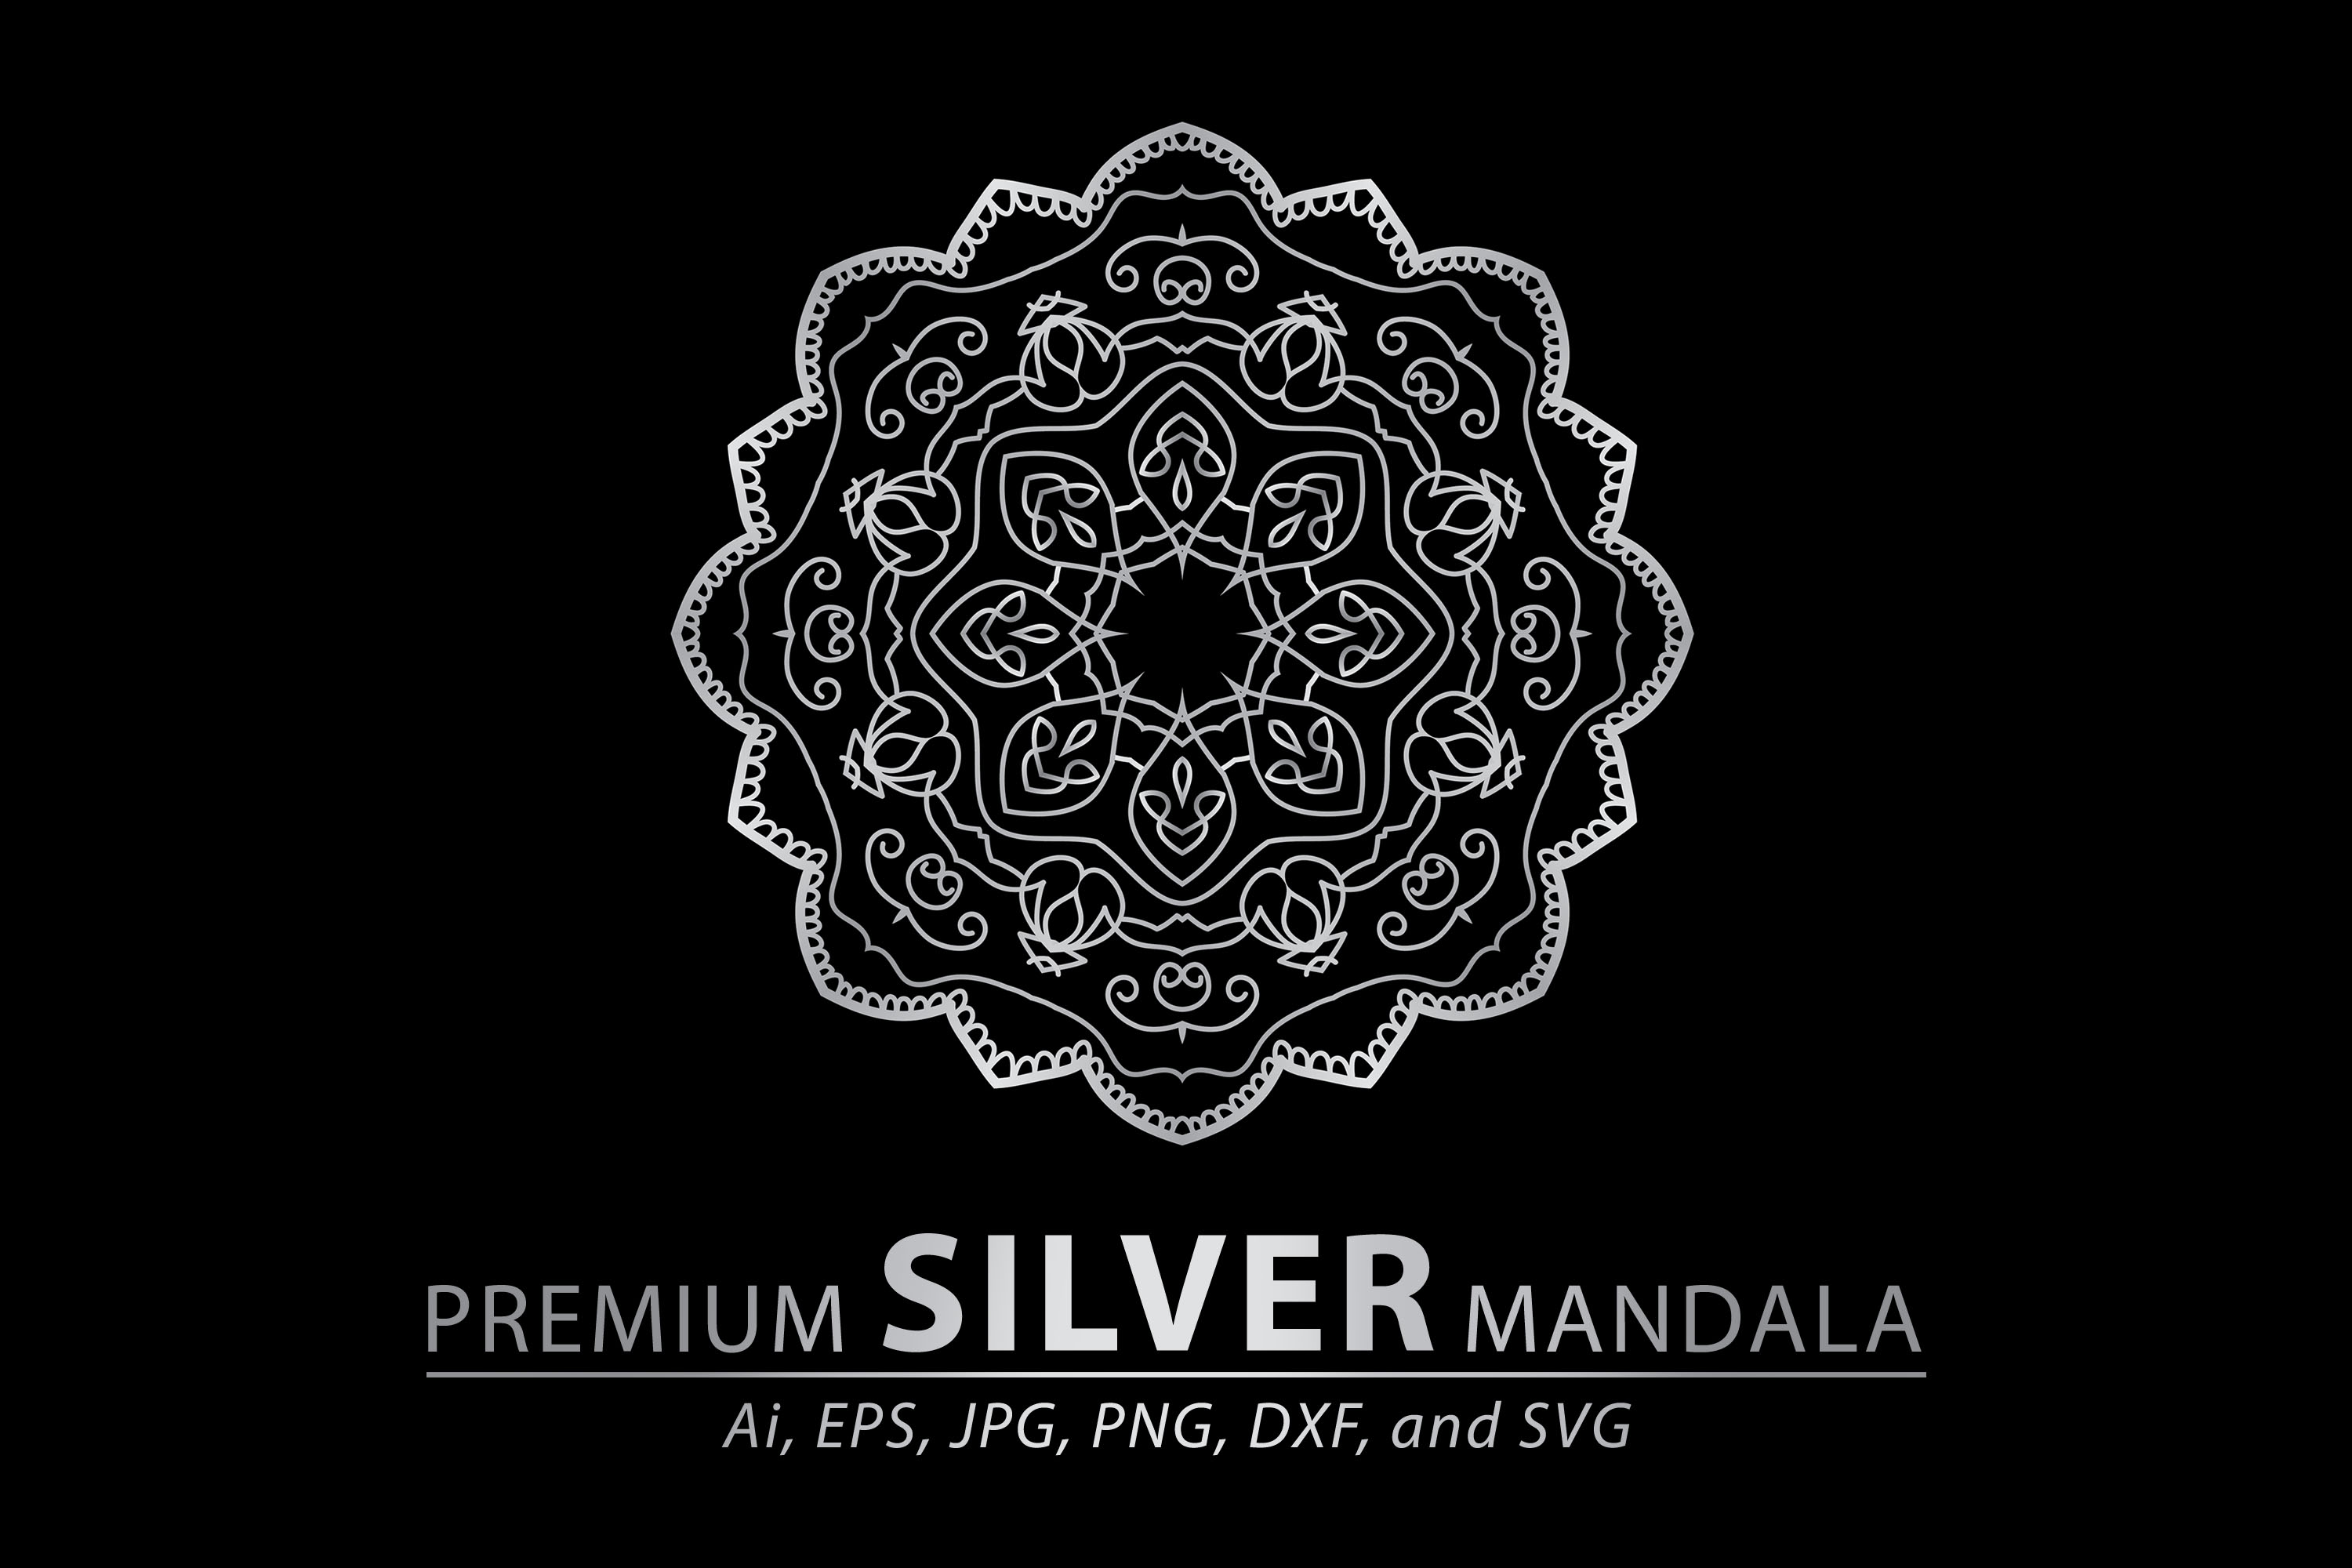 Download Free Premium Silver Mandala Vector Pattern Graphic By Redsugardesign Creative Fabrica for Cricut Explore, Silhouette and other cutting machines.